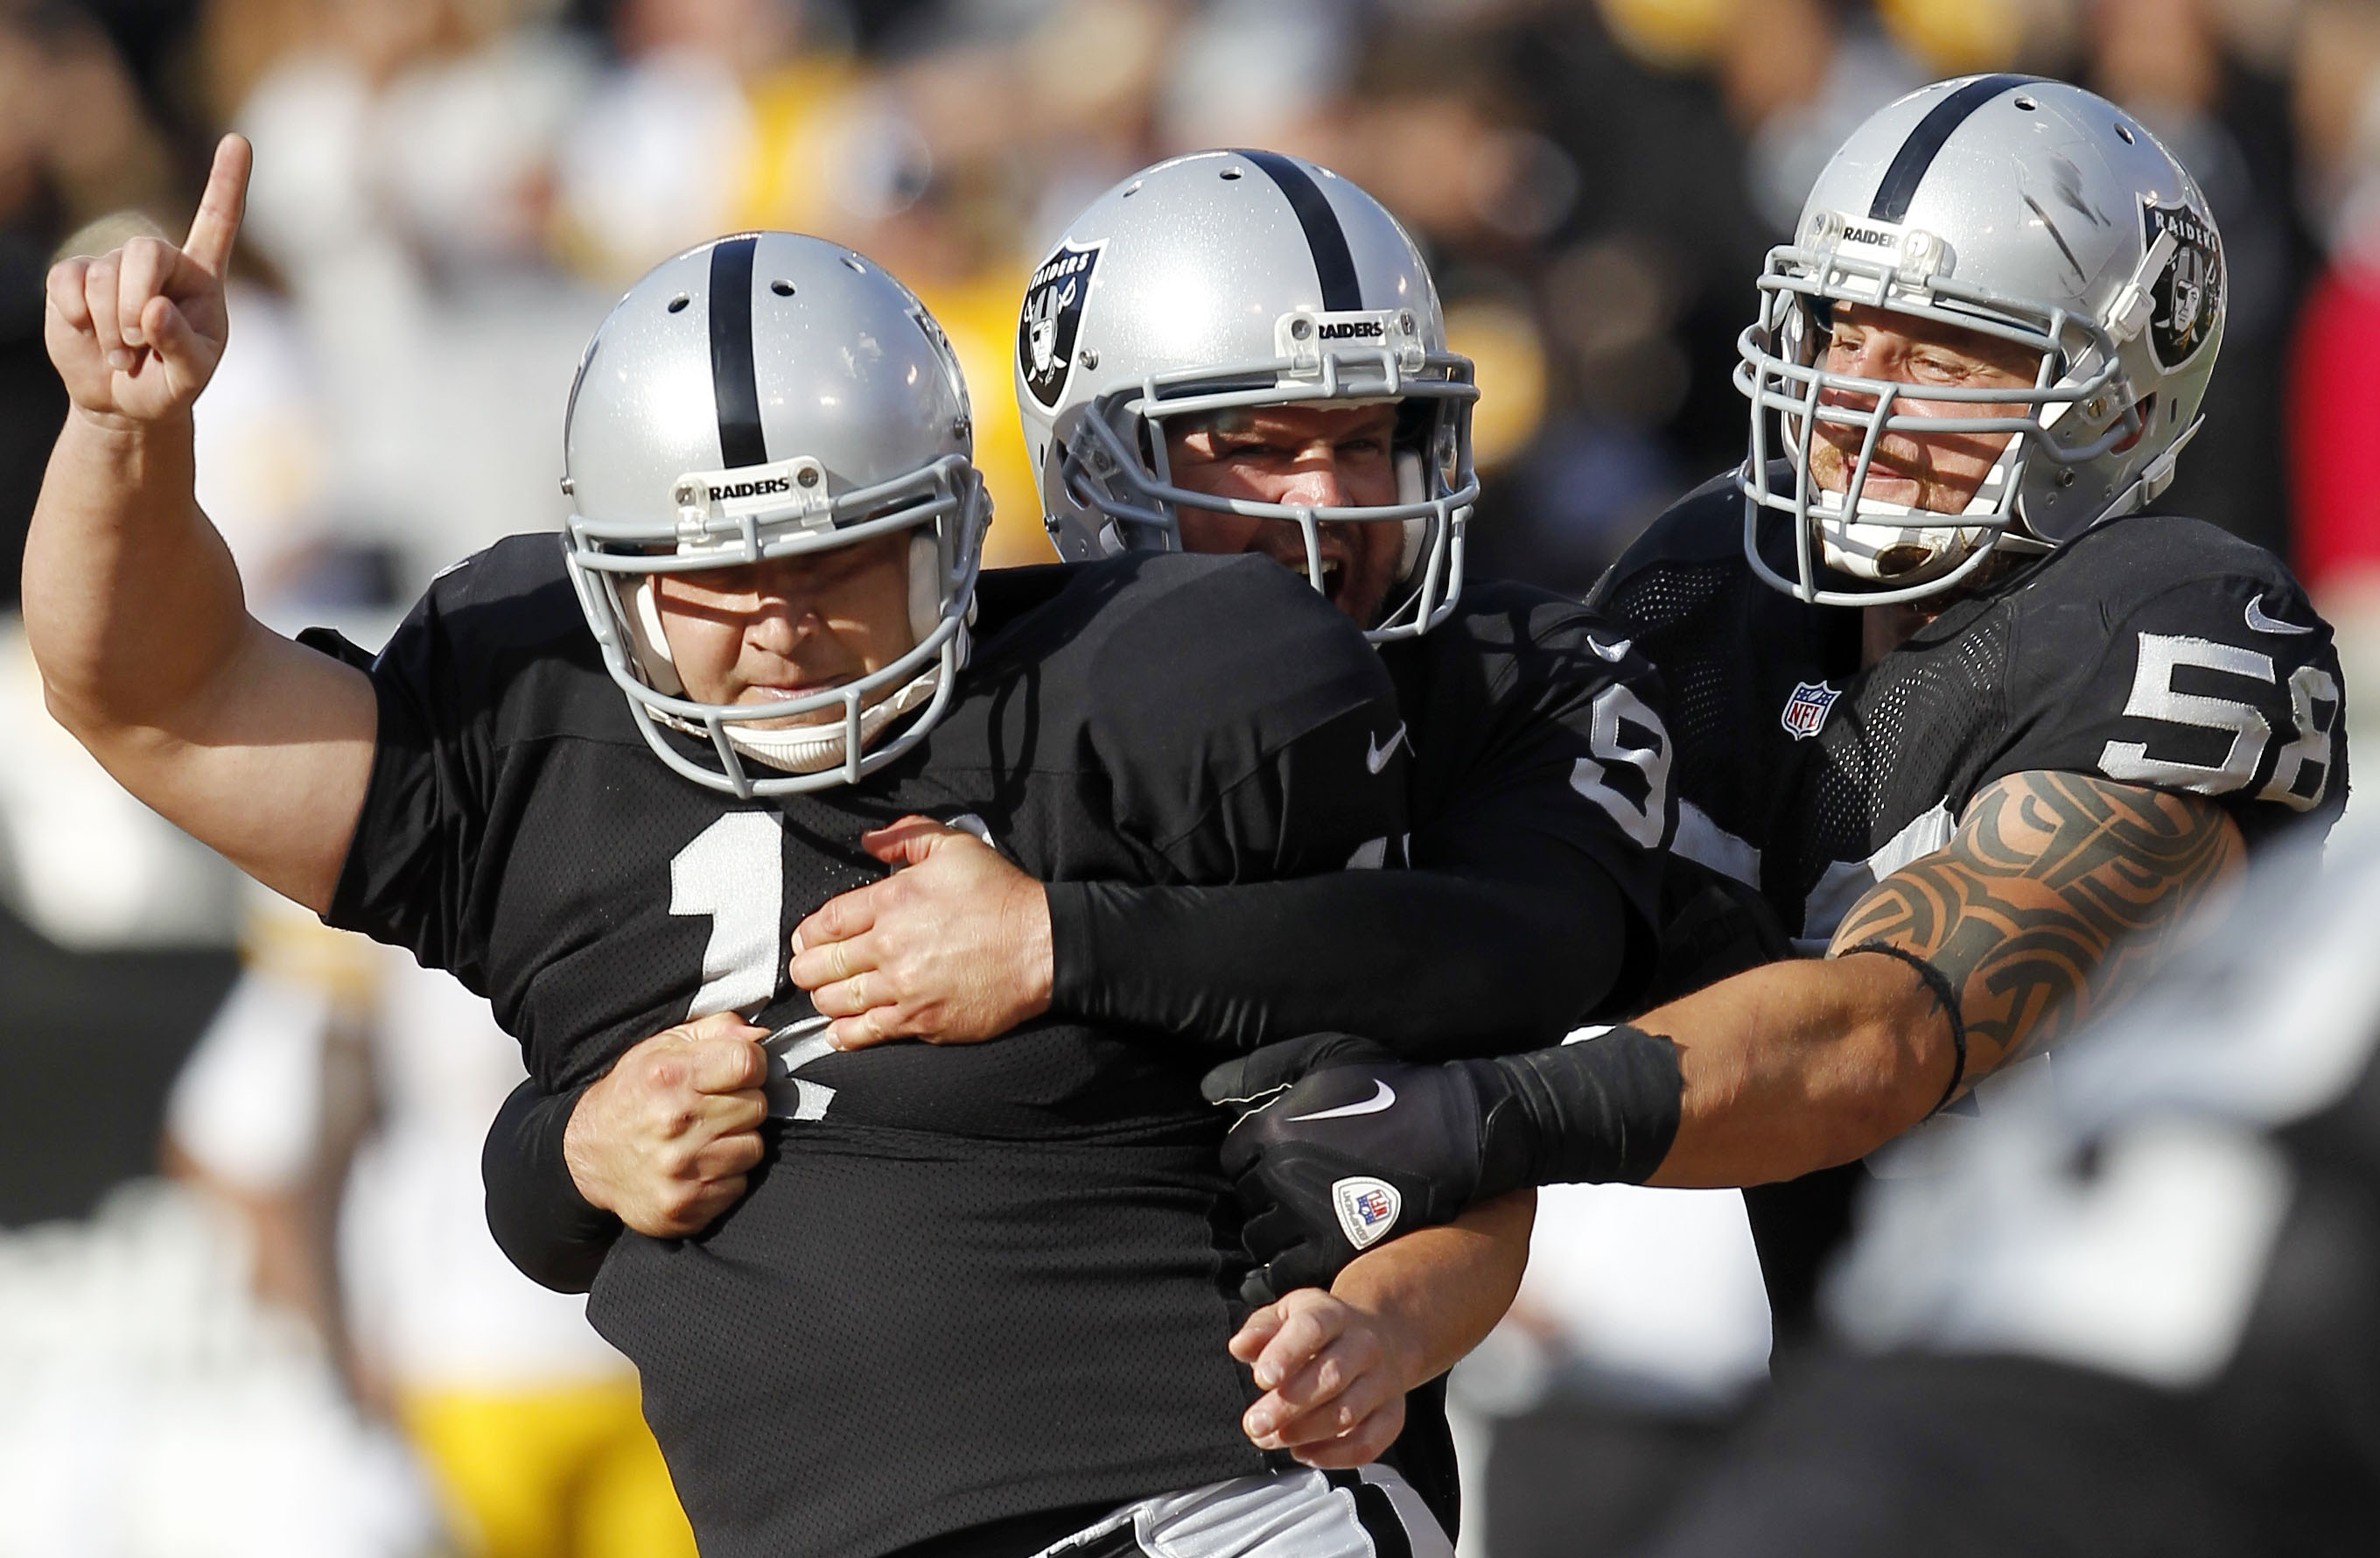 The Steelers Lost Because They Gave Sebastian Janikowski A Chan…